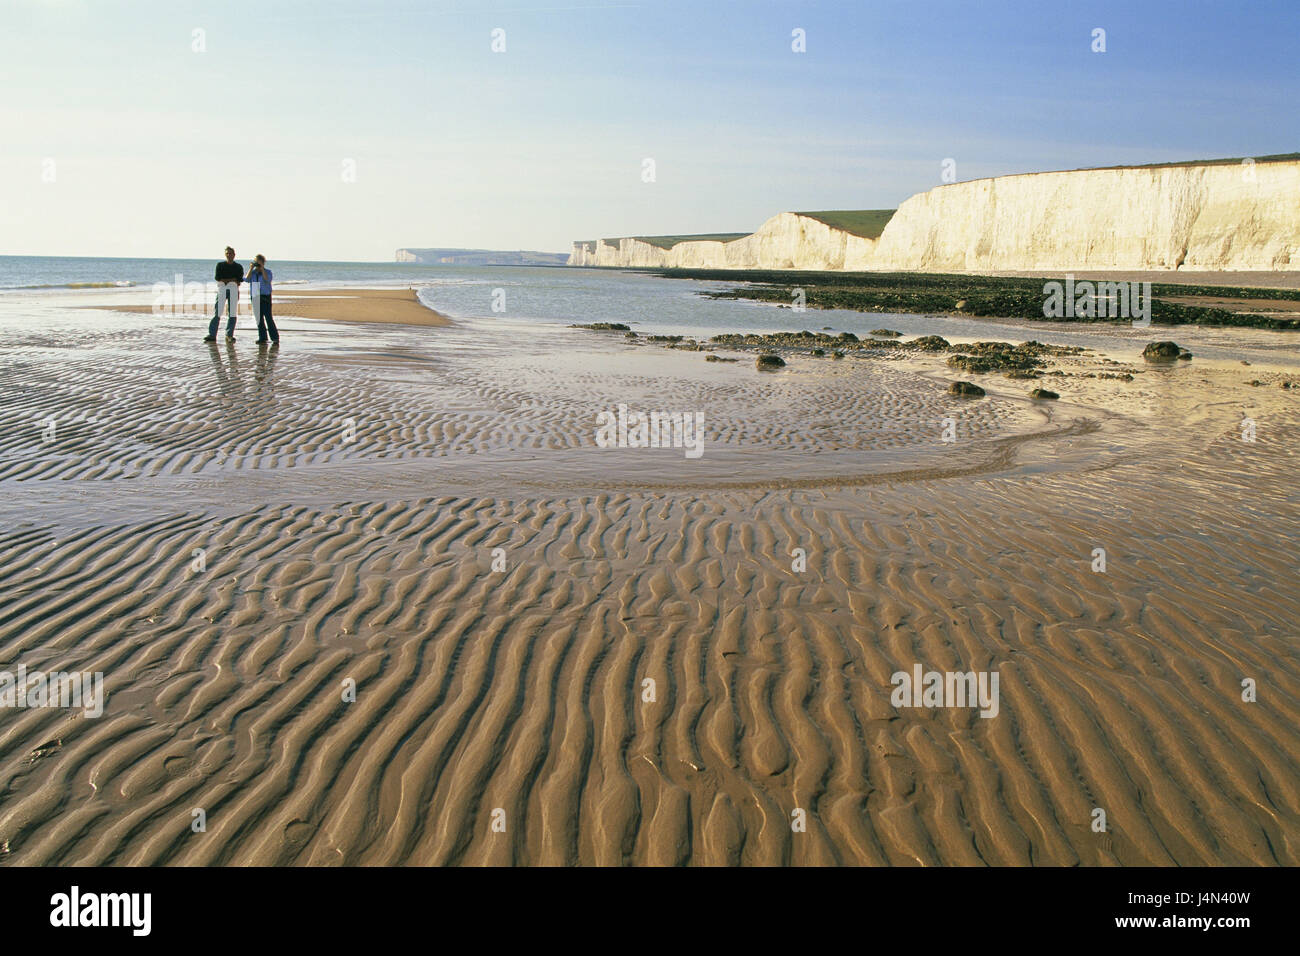 Great Britain, England, Sussex, Eastbourne, Seven Sisters, Beachy Head, rock, beach, couple, walk, no model release, - Stock Image